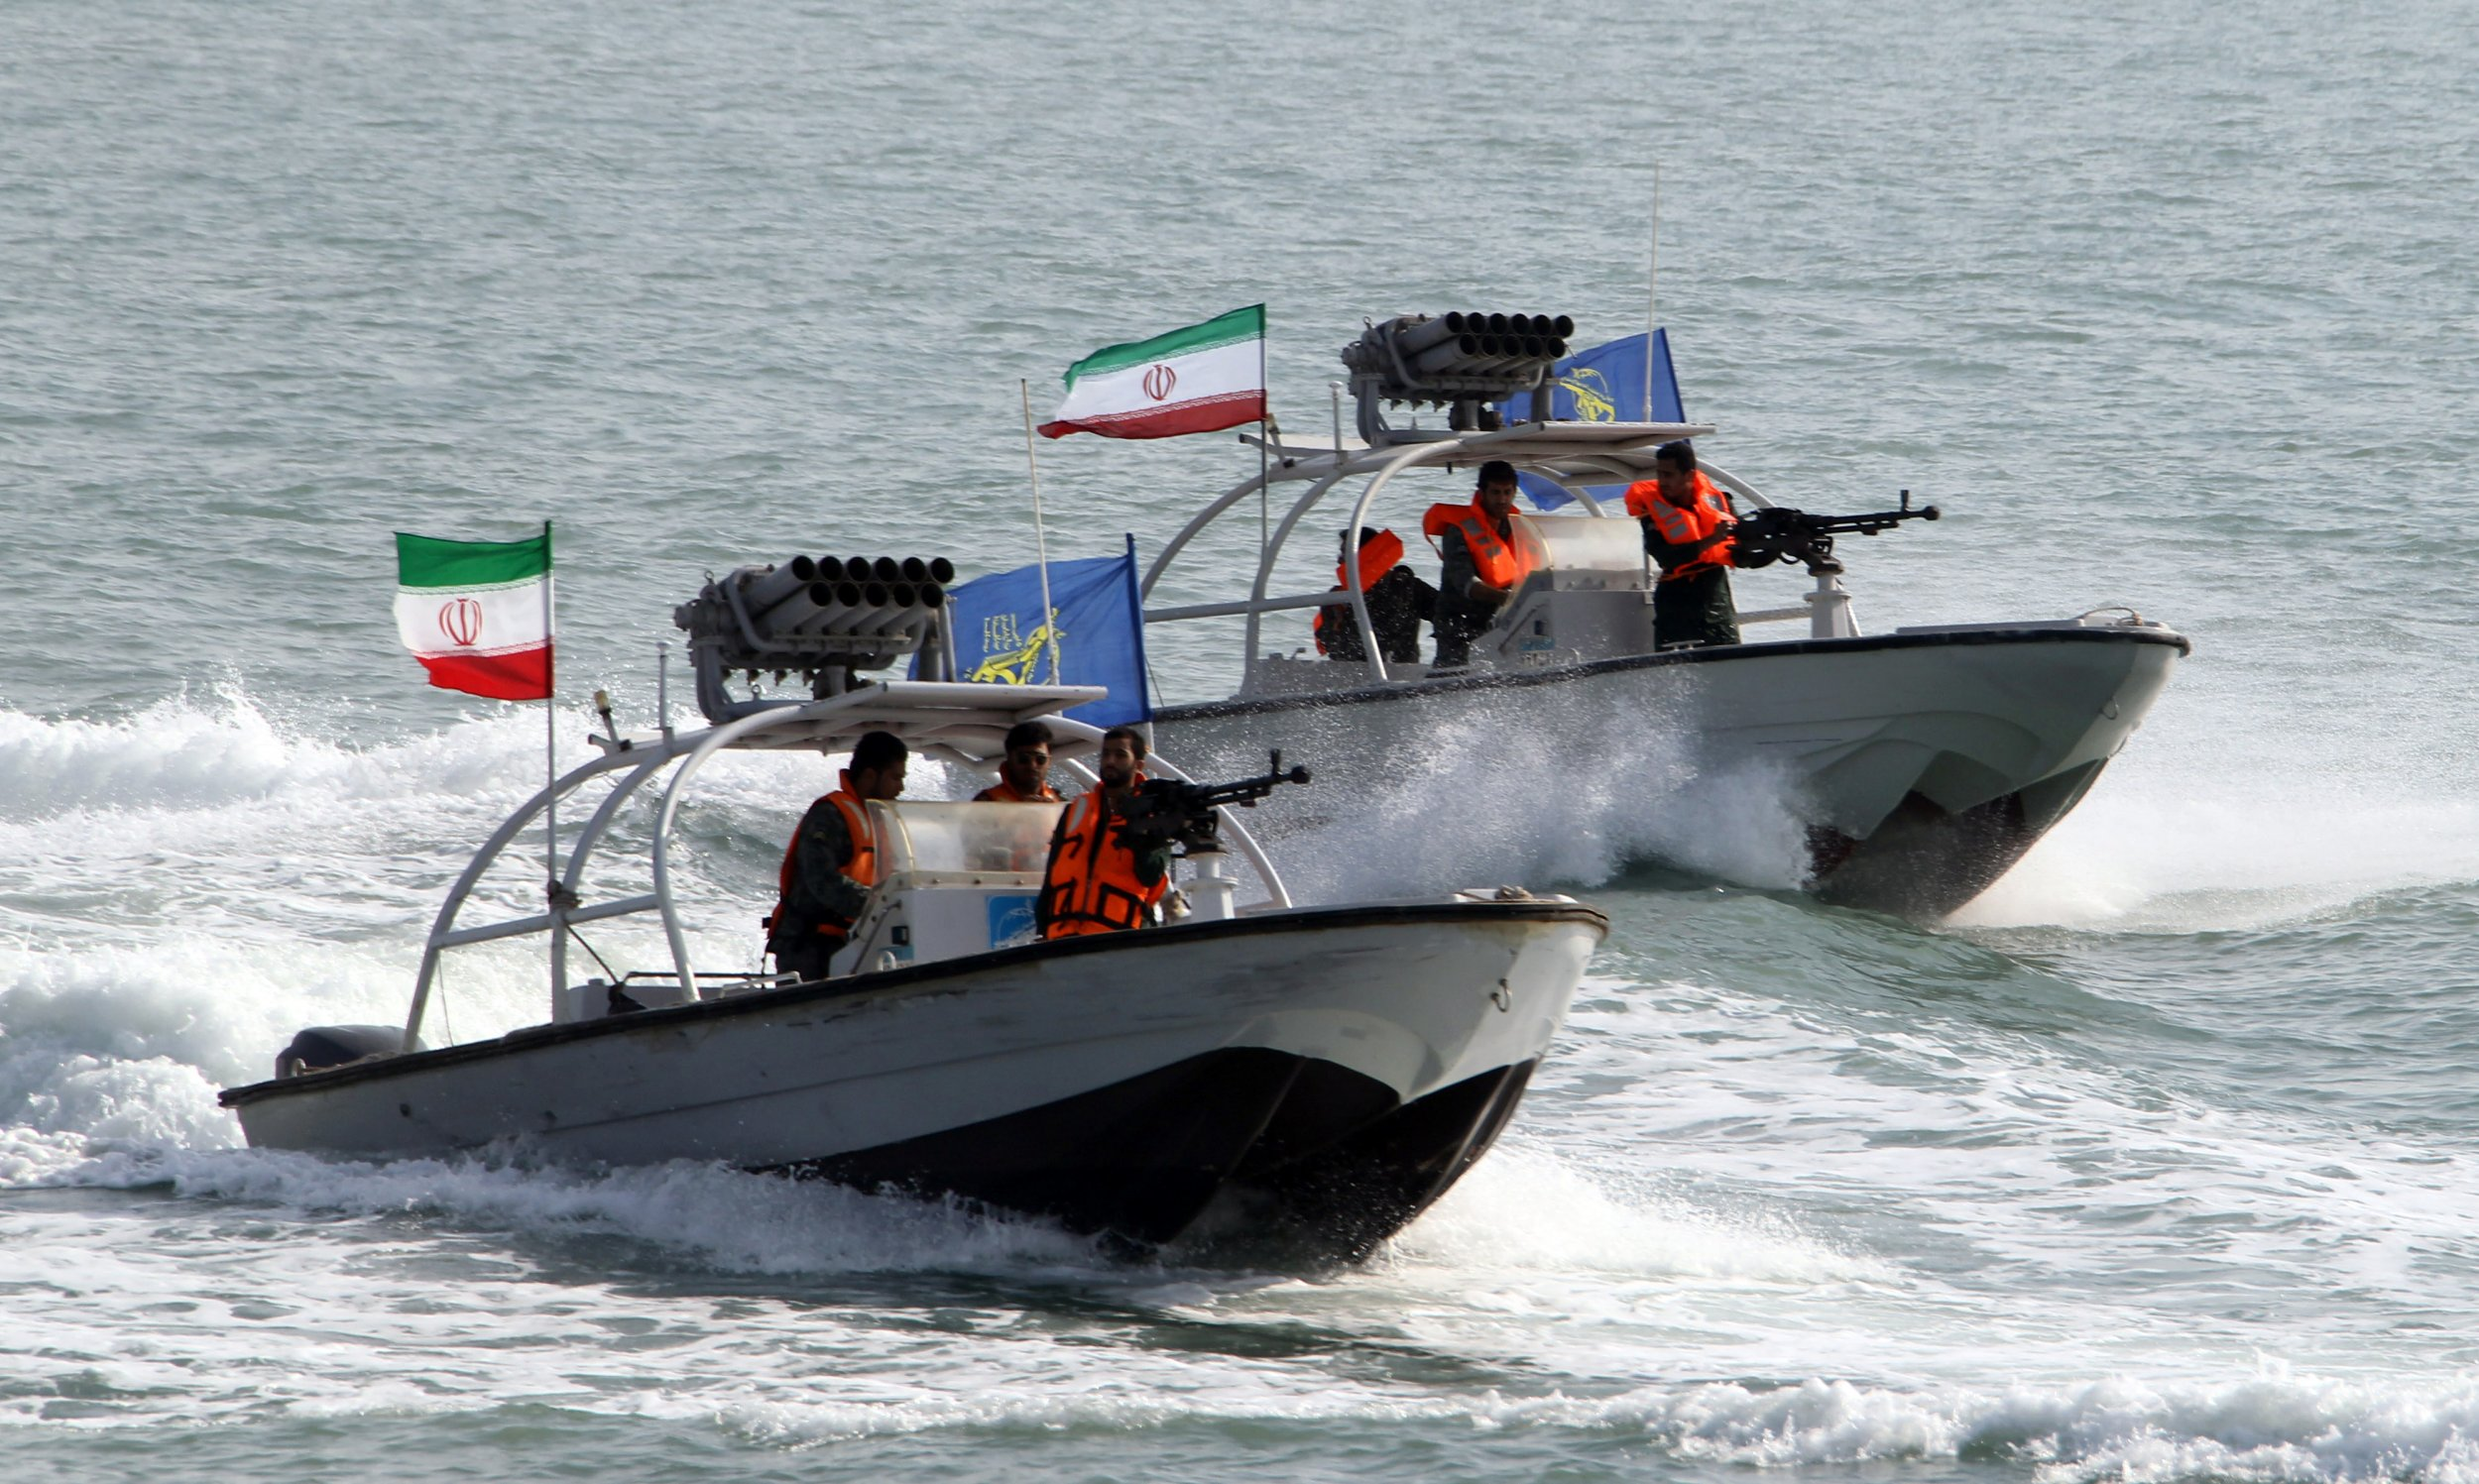 Iran boats missiles overreaction donald trump